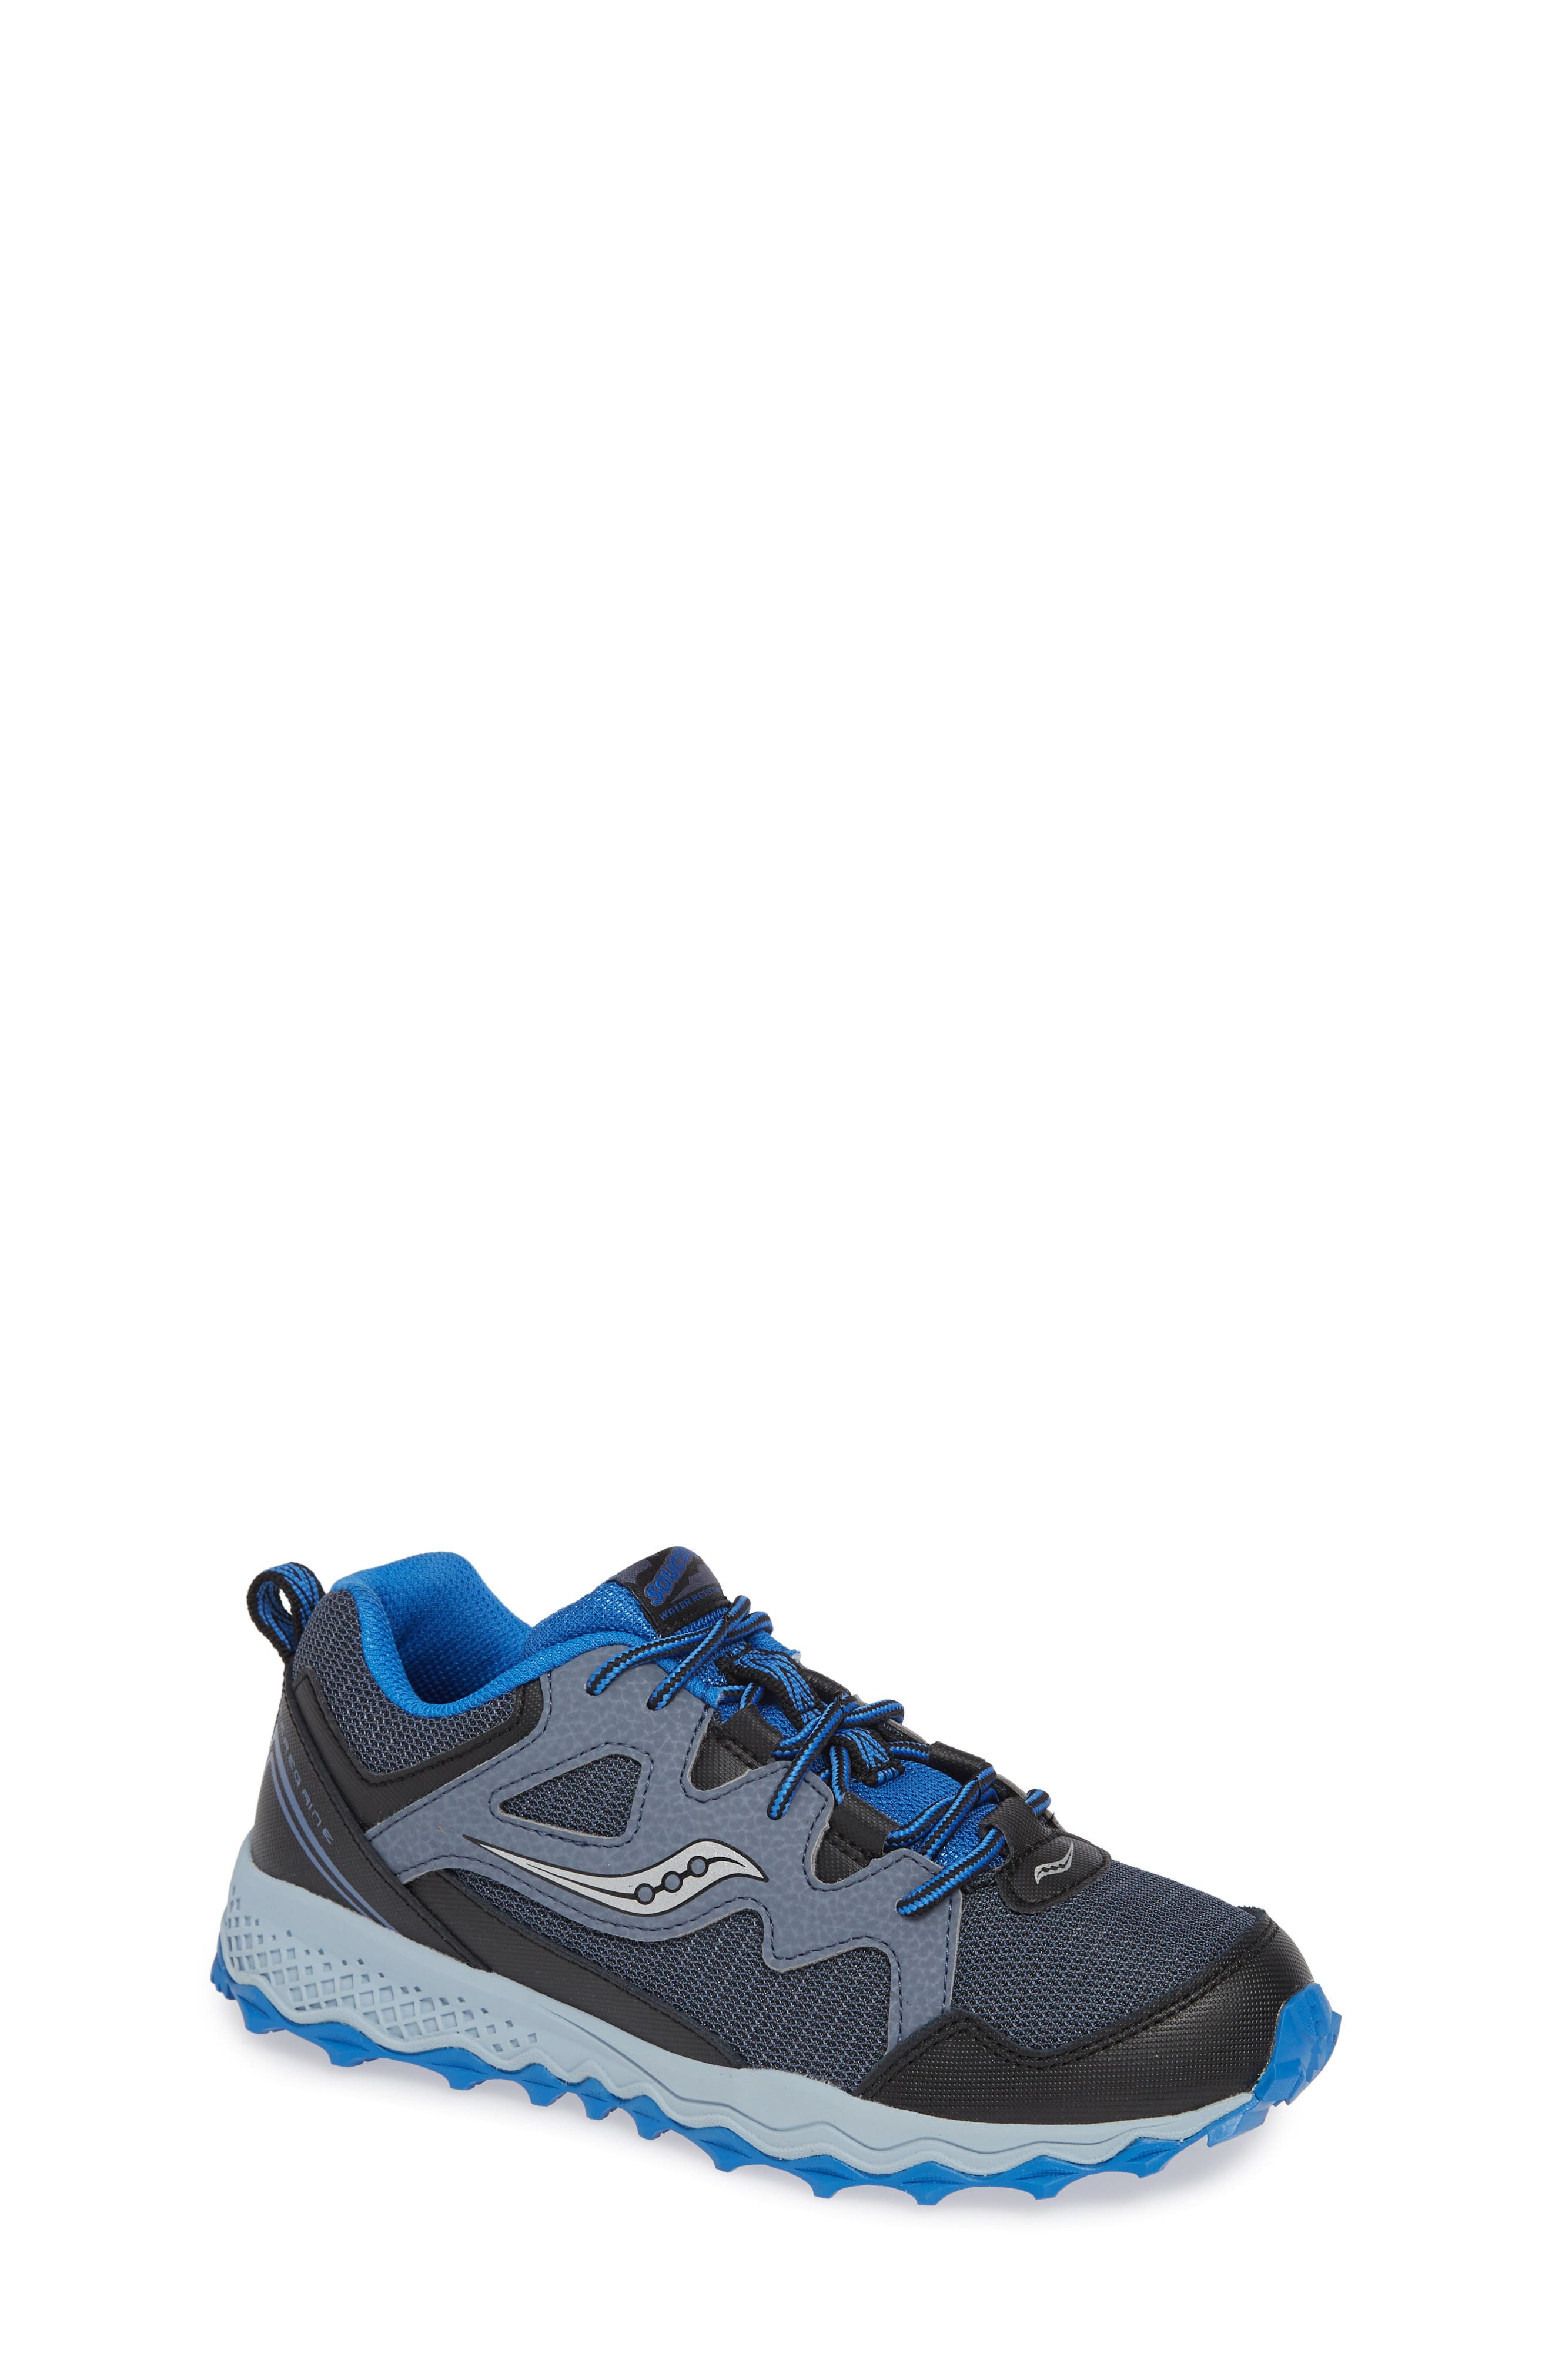 Peregrine Shield 2 Water Repellent Sneaker,                             Main thumbnail 1, color,                             GREY LEATHER/ MESH